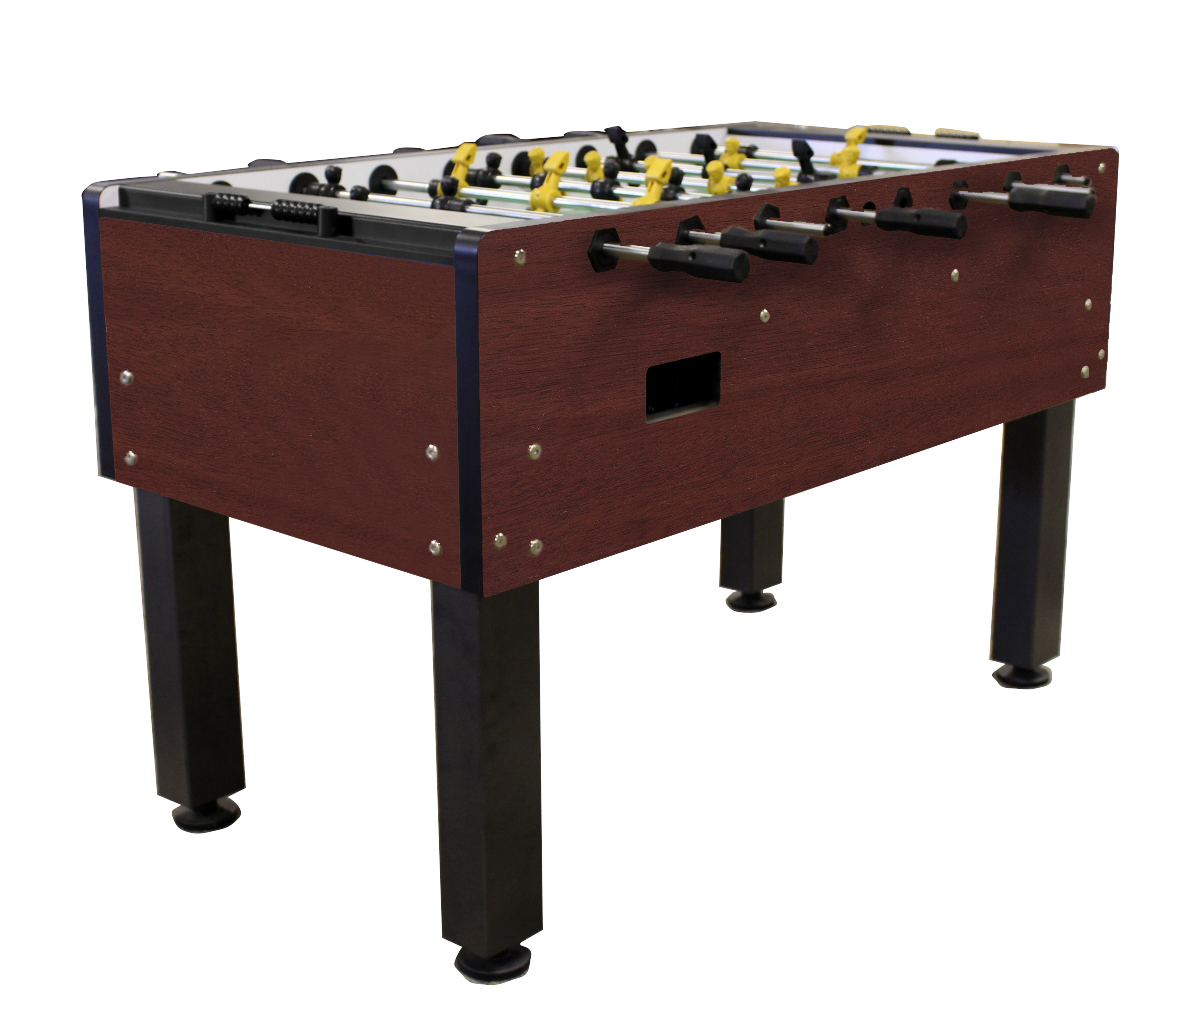 Olhausen Milan Foosball Table in Mahogany